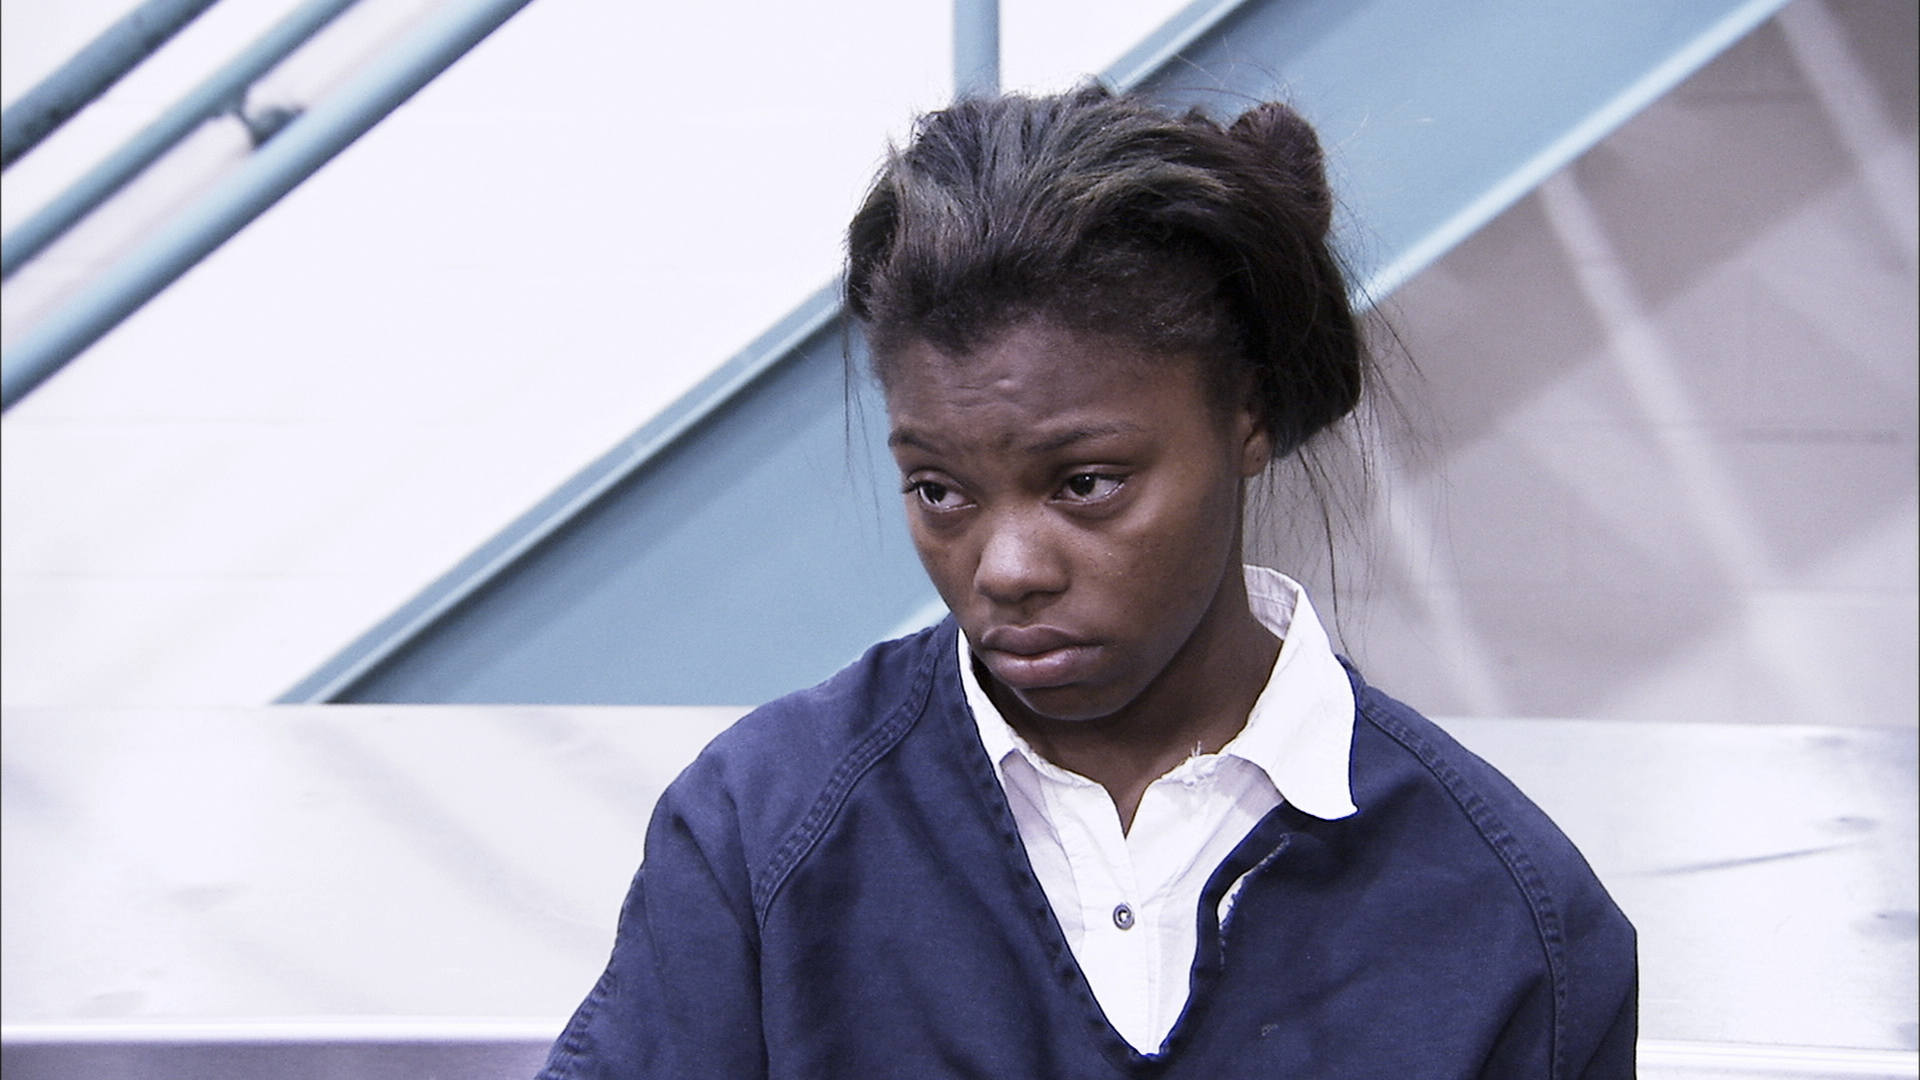 beyond scared straight essay In other words, she was a perfect candidate for beyond scared straight, before she found herself in more serious trouble for young summer, one inmate really got through to her.